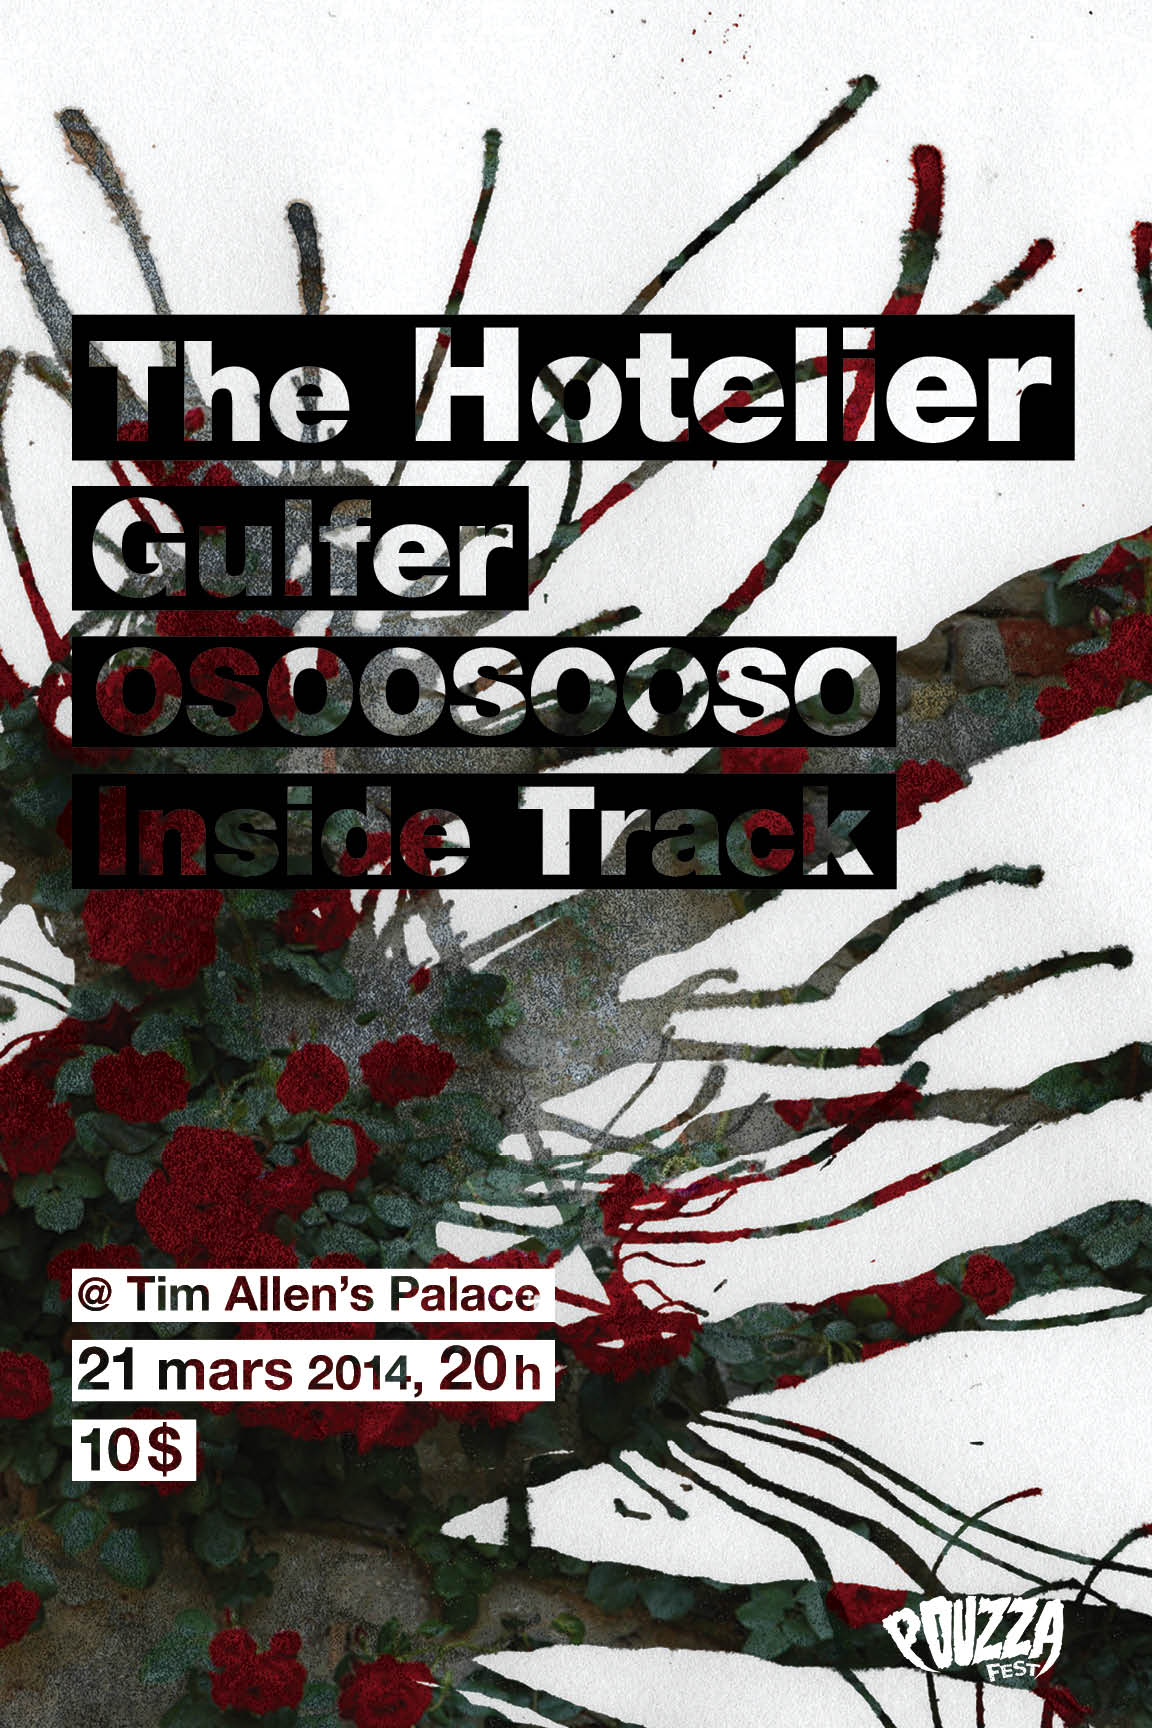 The Hotelier / Gulfer / Osoosooso / The Inside Track @ Tim Allen's Place le 21 mars